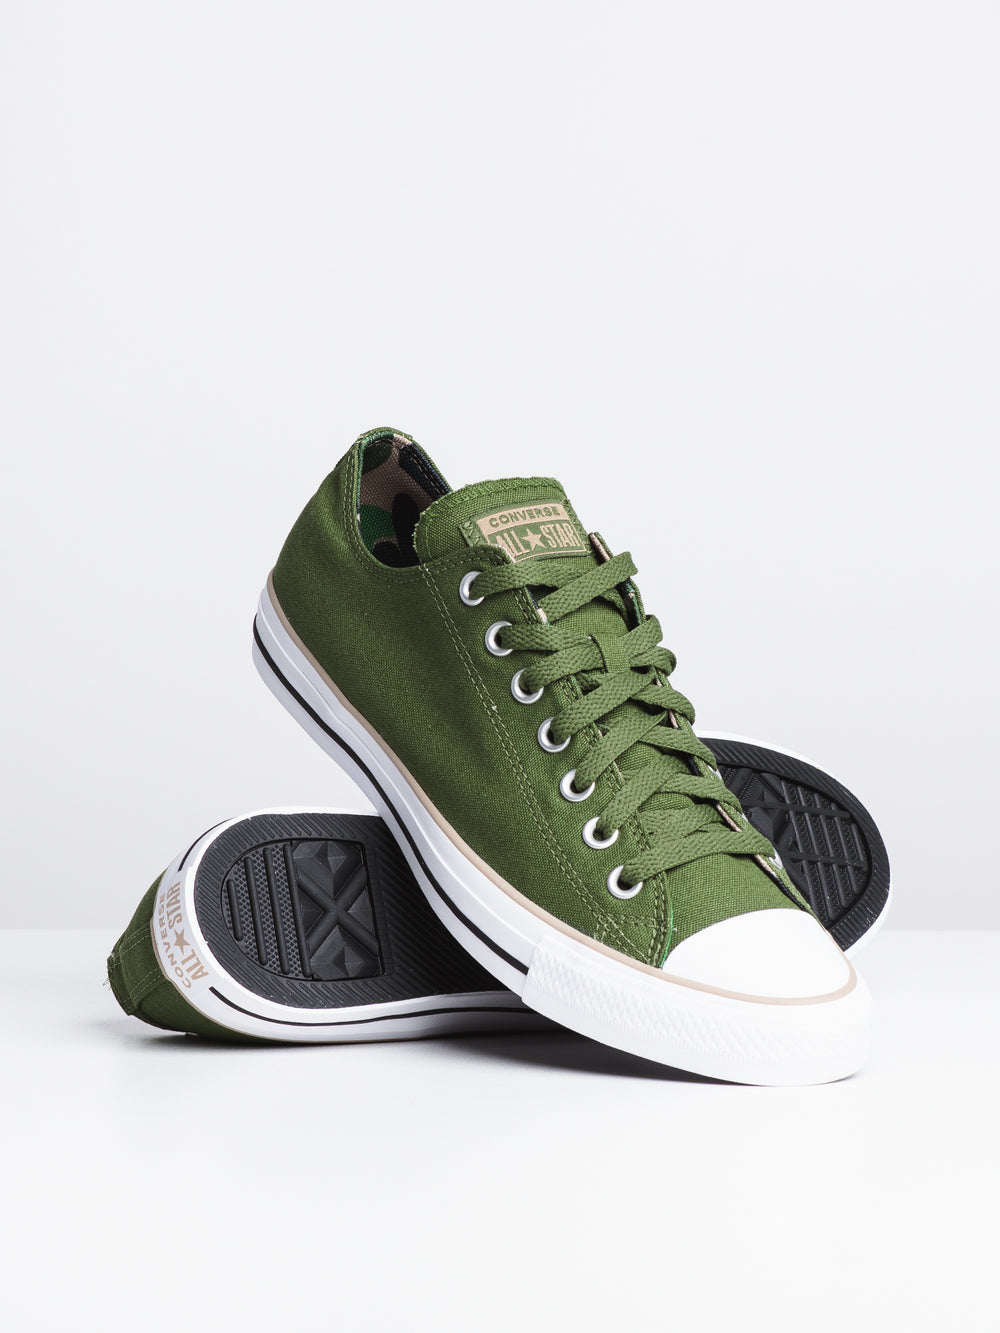 MENS CHUCK TAYLOR ALL-STARS CLASSIC CAMO CANVAS OX-GRN